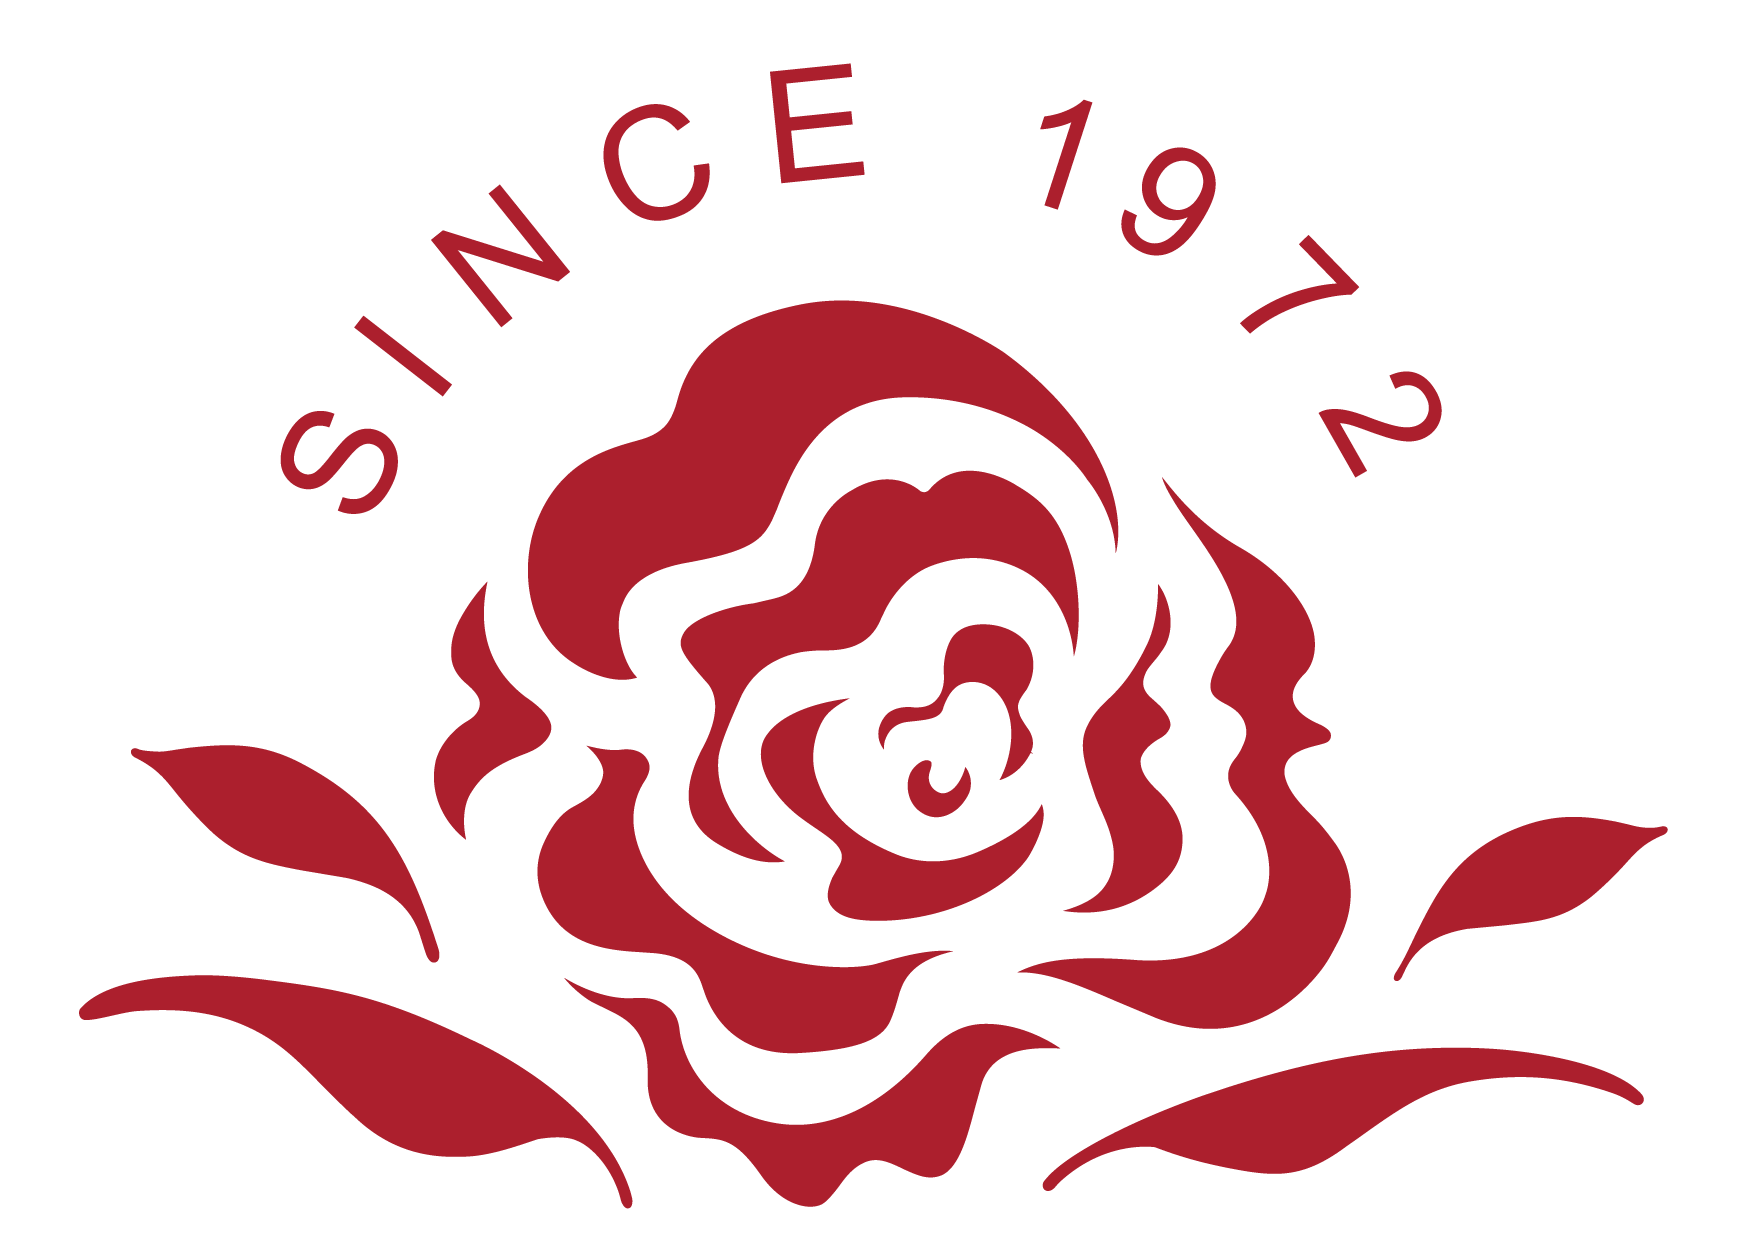 since-1972-red-rose-icon.png